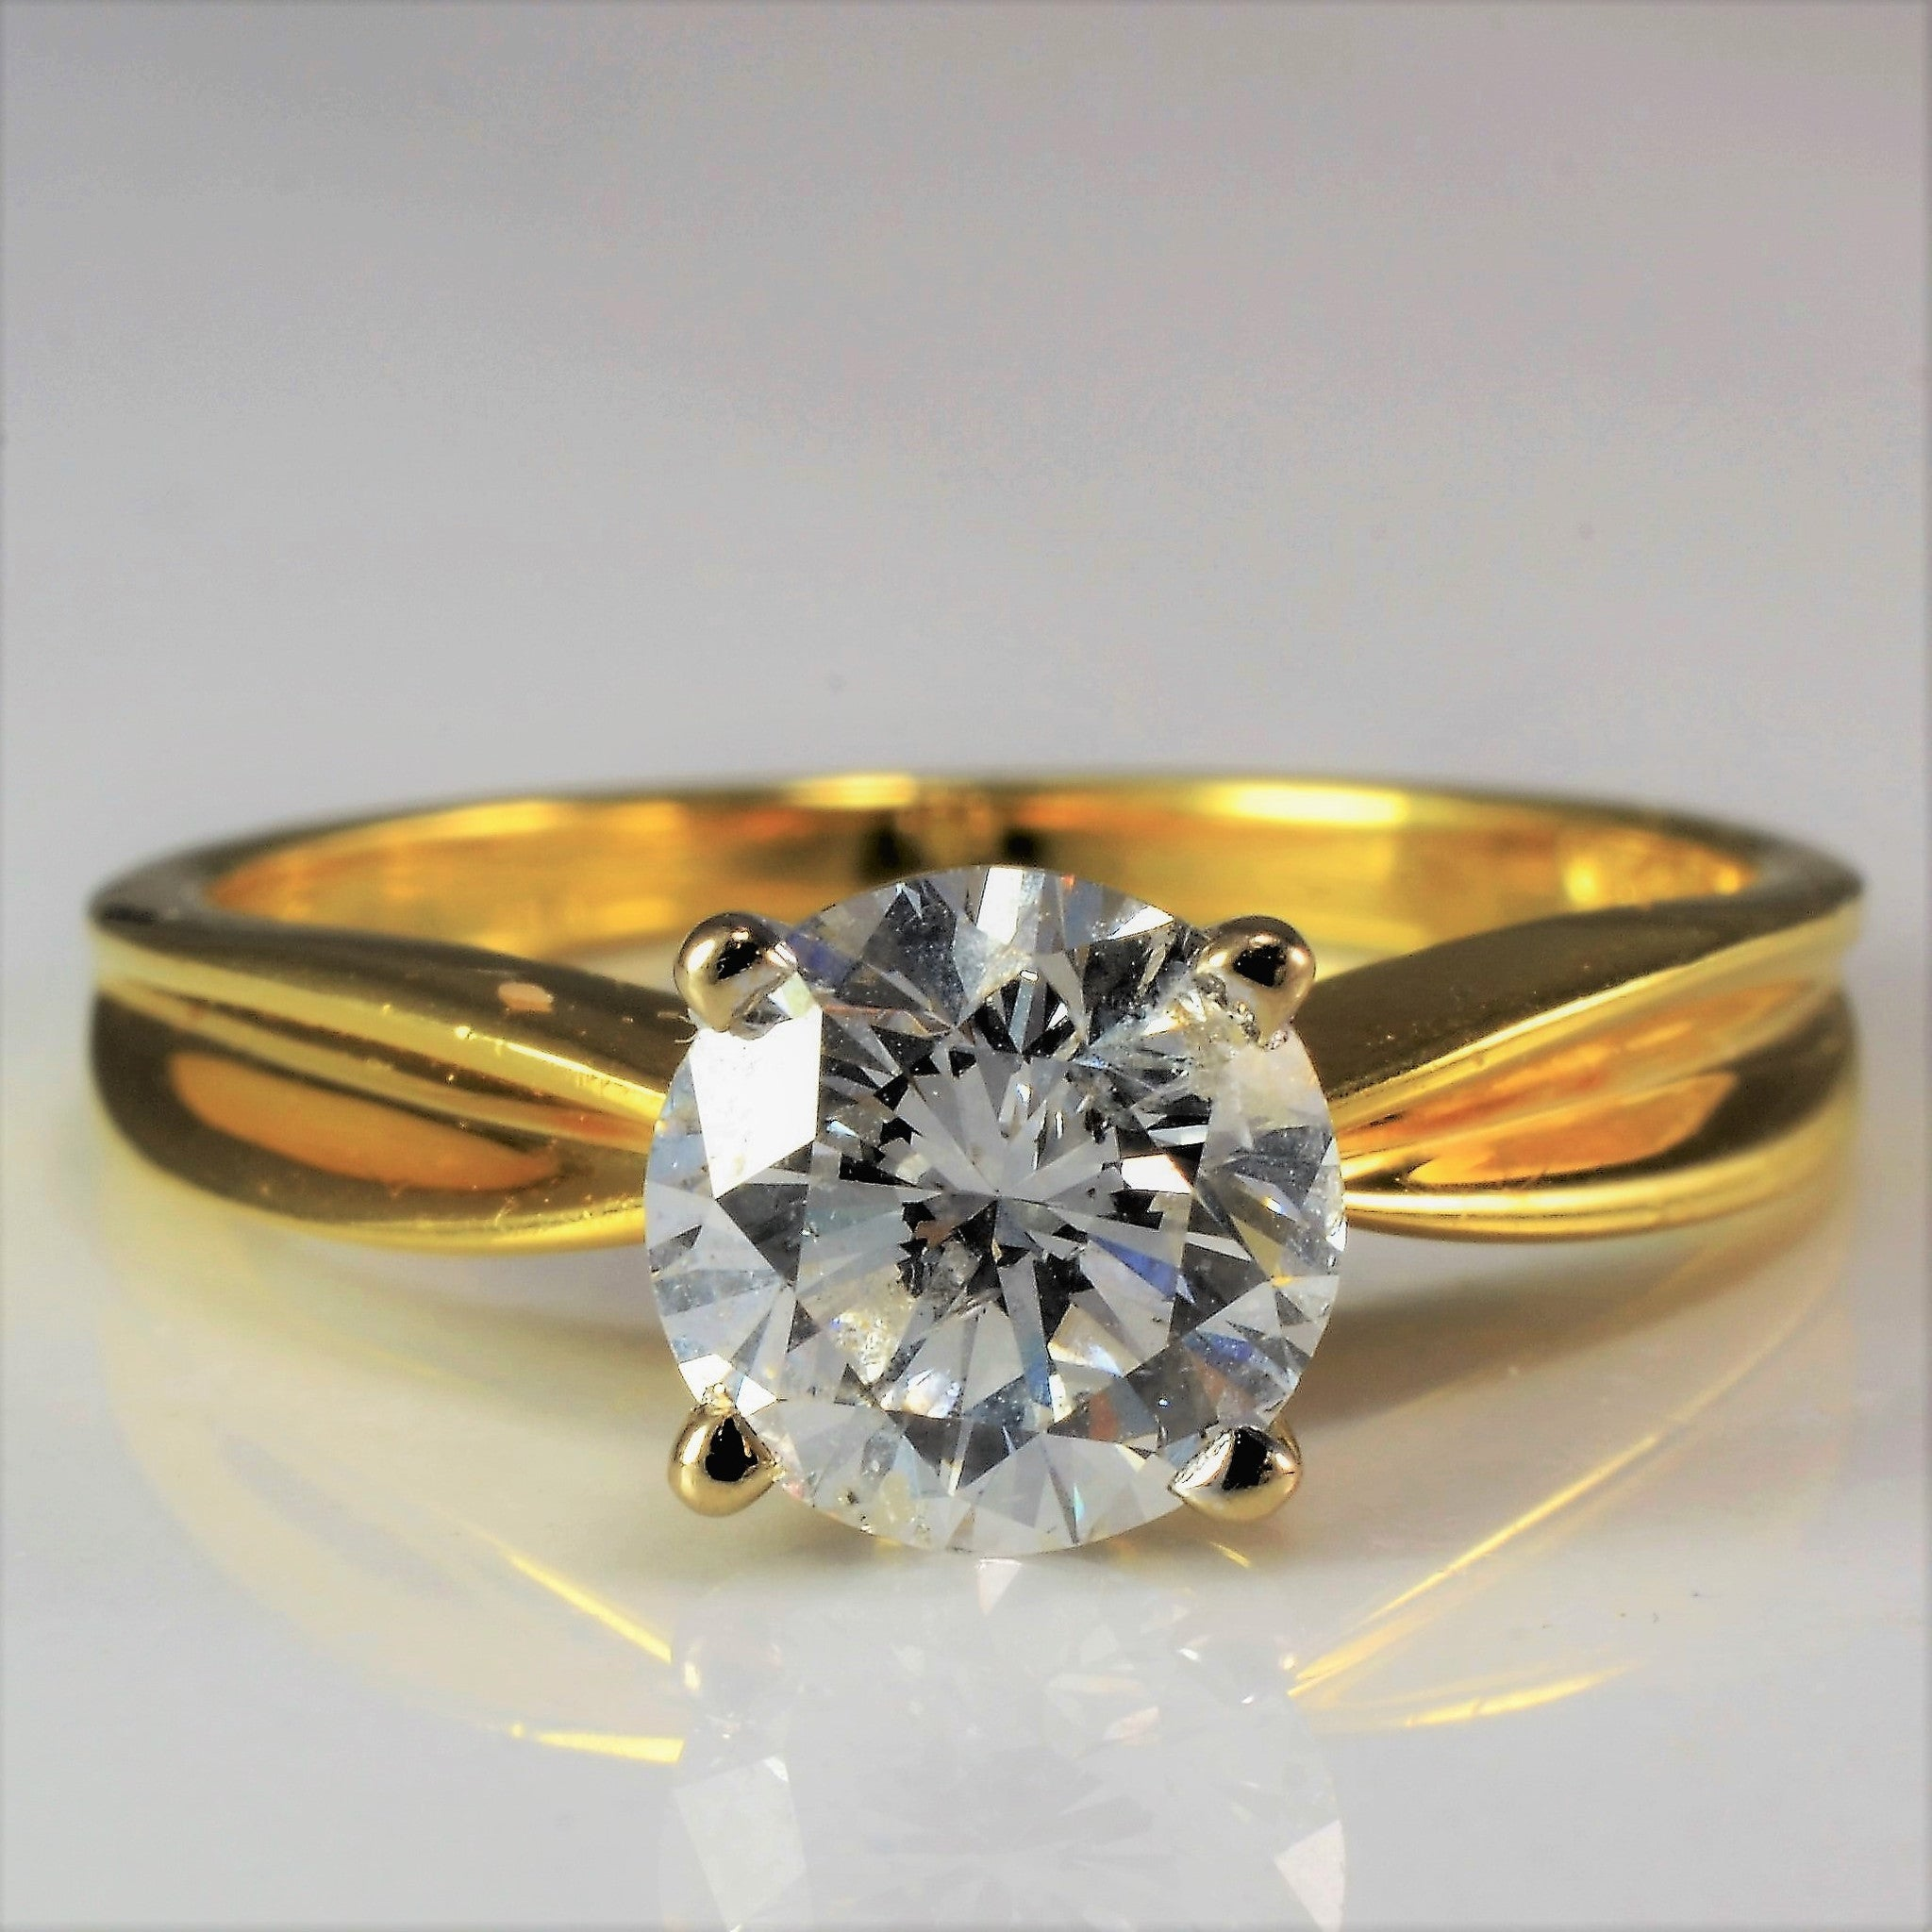 Round Brilliant Solitaire Engagement Ring | 1.03 ct, SZ 5.25 |